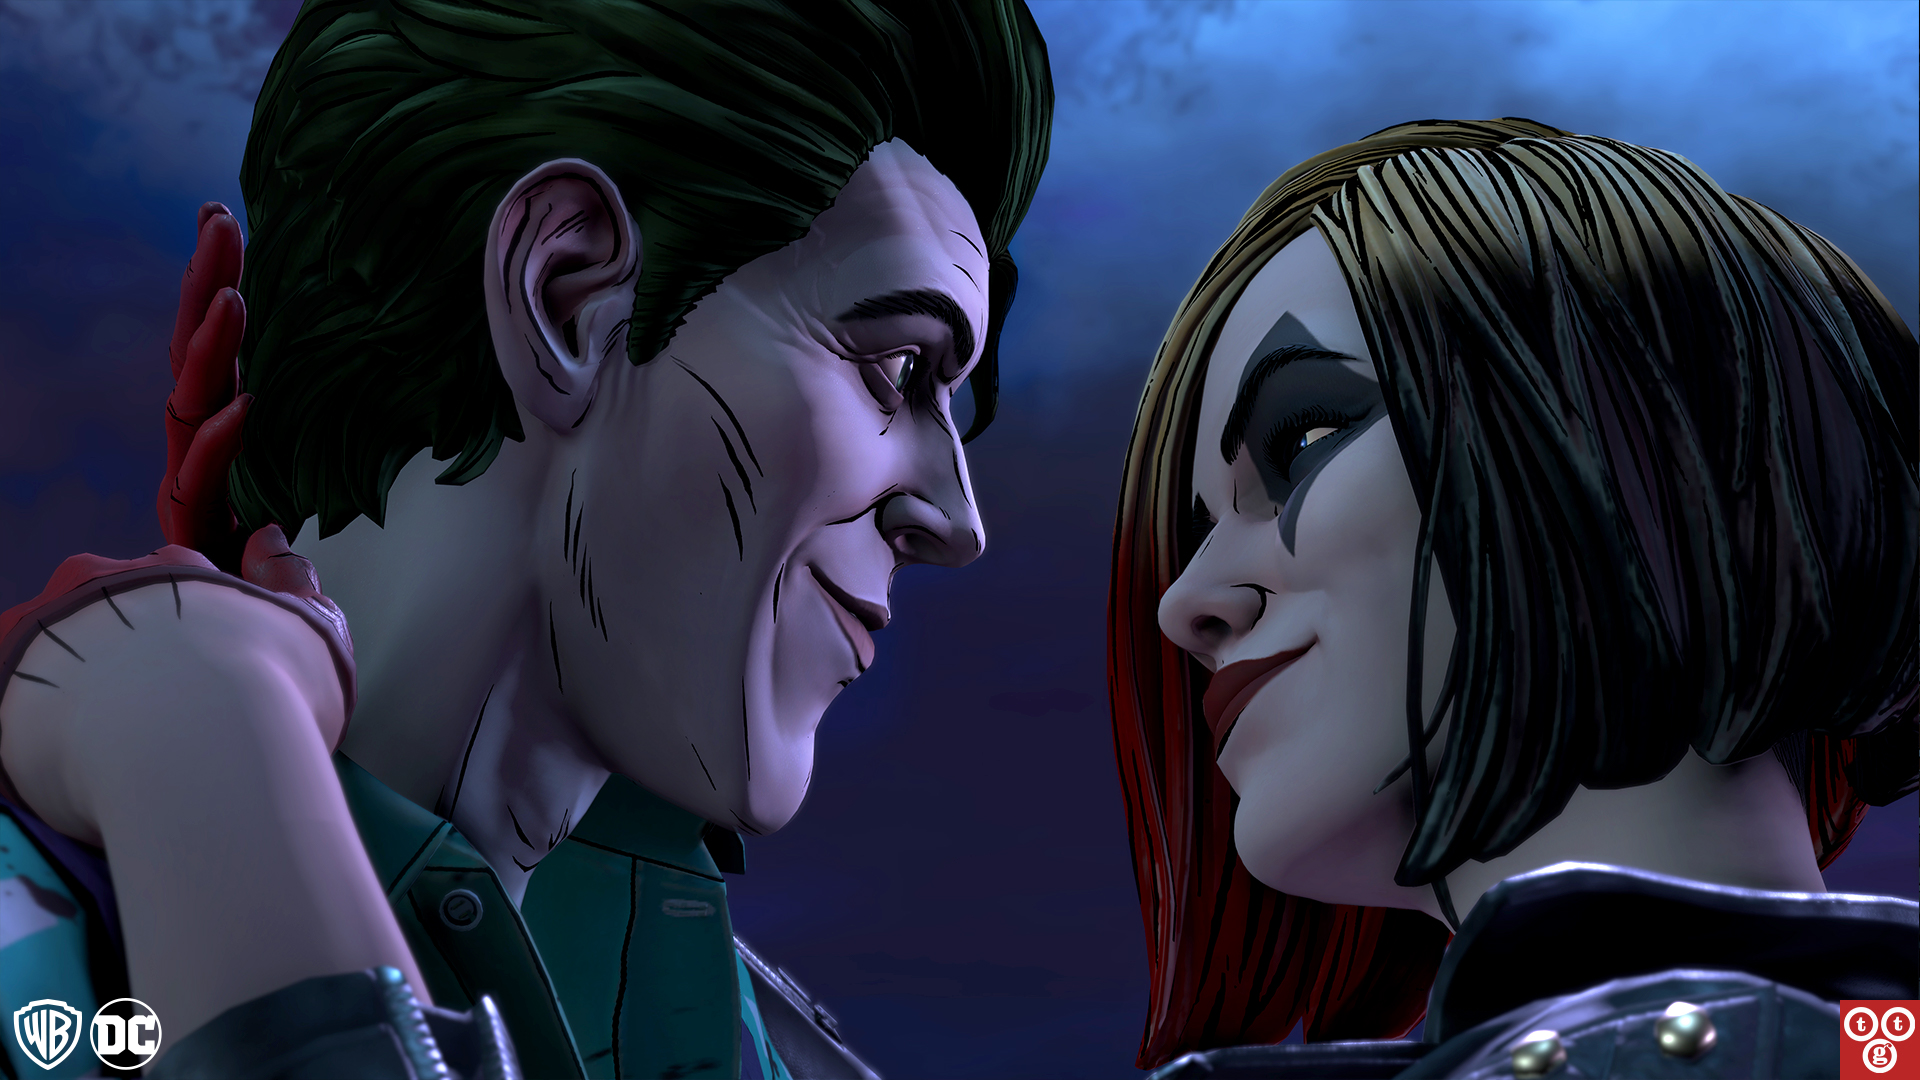 JokerHarley_Bridge_1920x1080